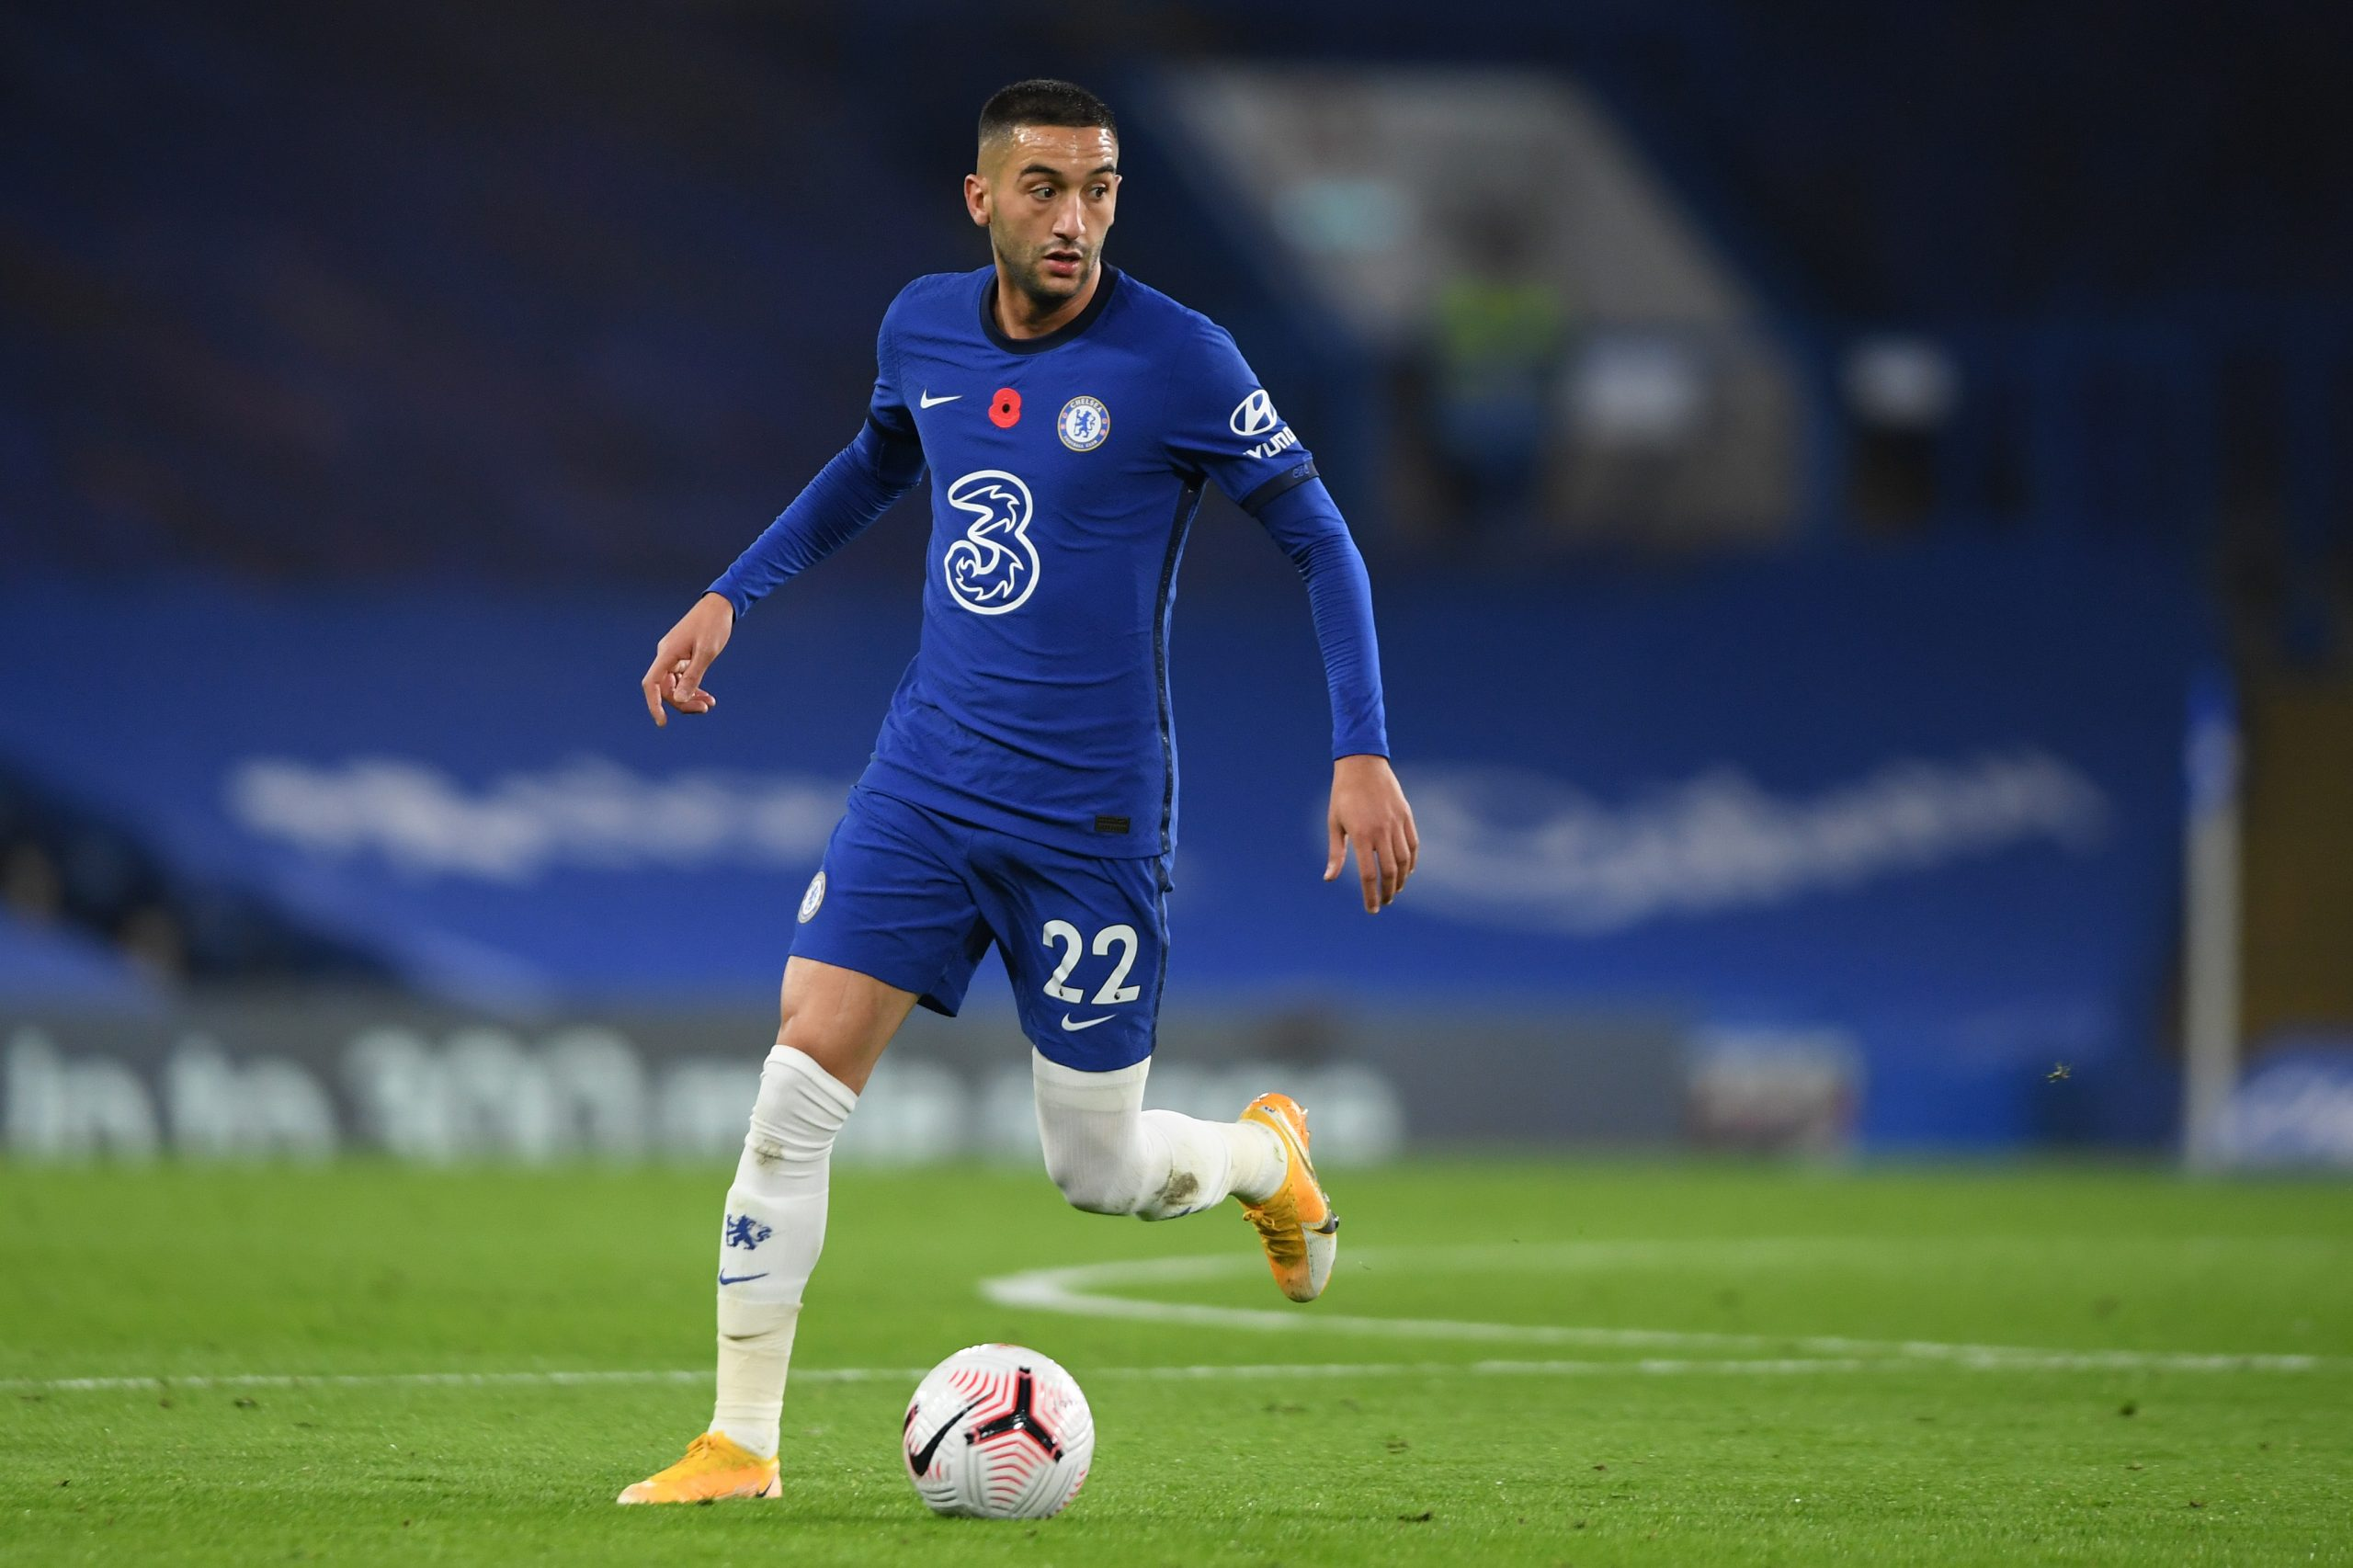 Hakim Ziyech in action for Chelsea. (GETTY Images)